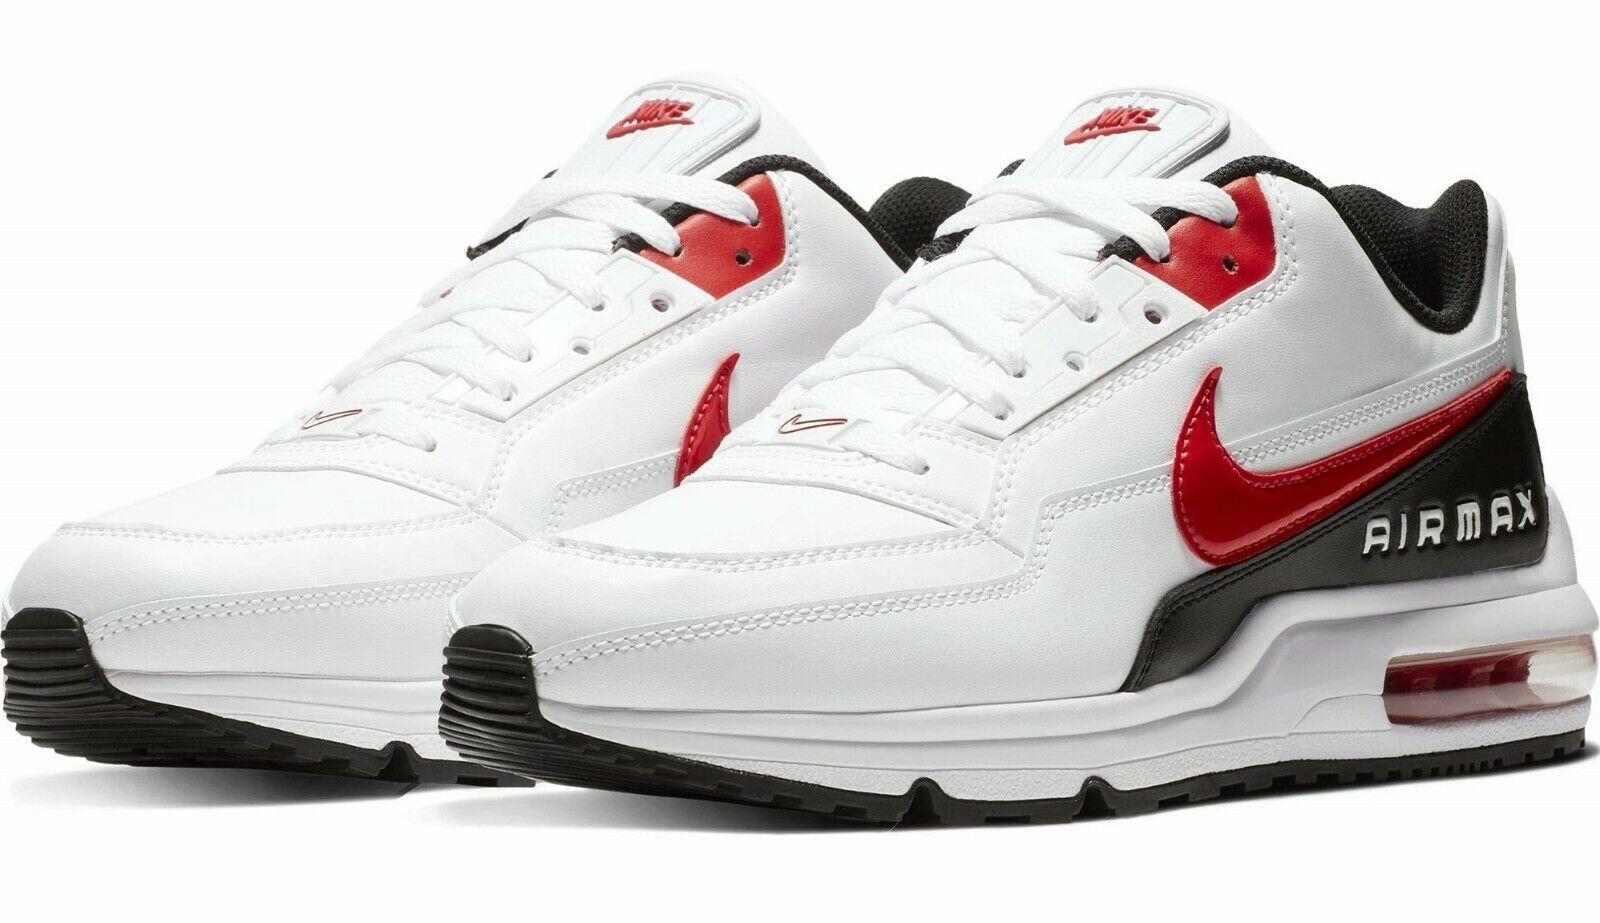 NIKE AIR MAX 90 LTD 3 MEN'S RUNNING SHOES LIFESTYLE SNEAKERS